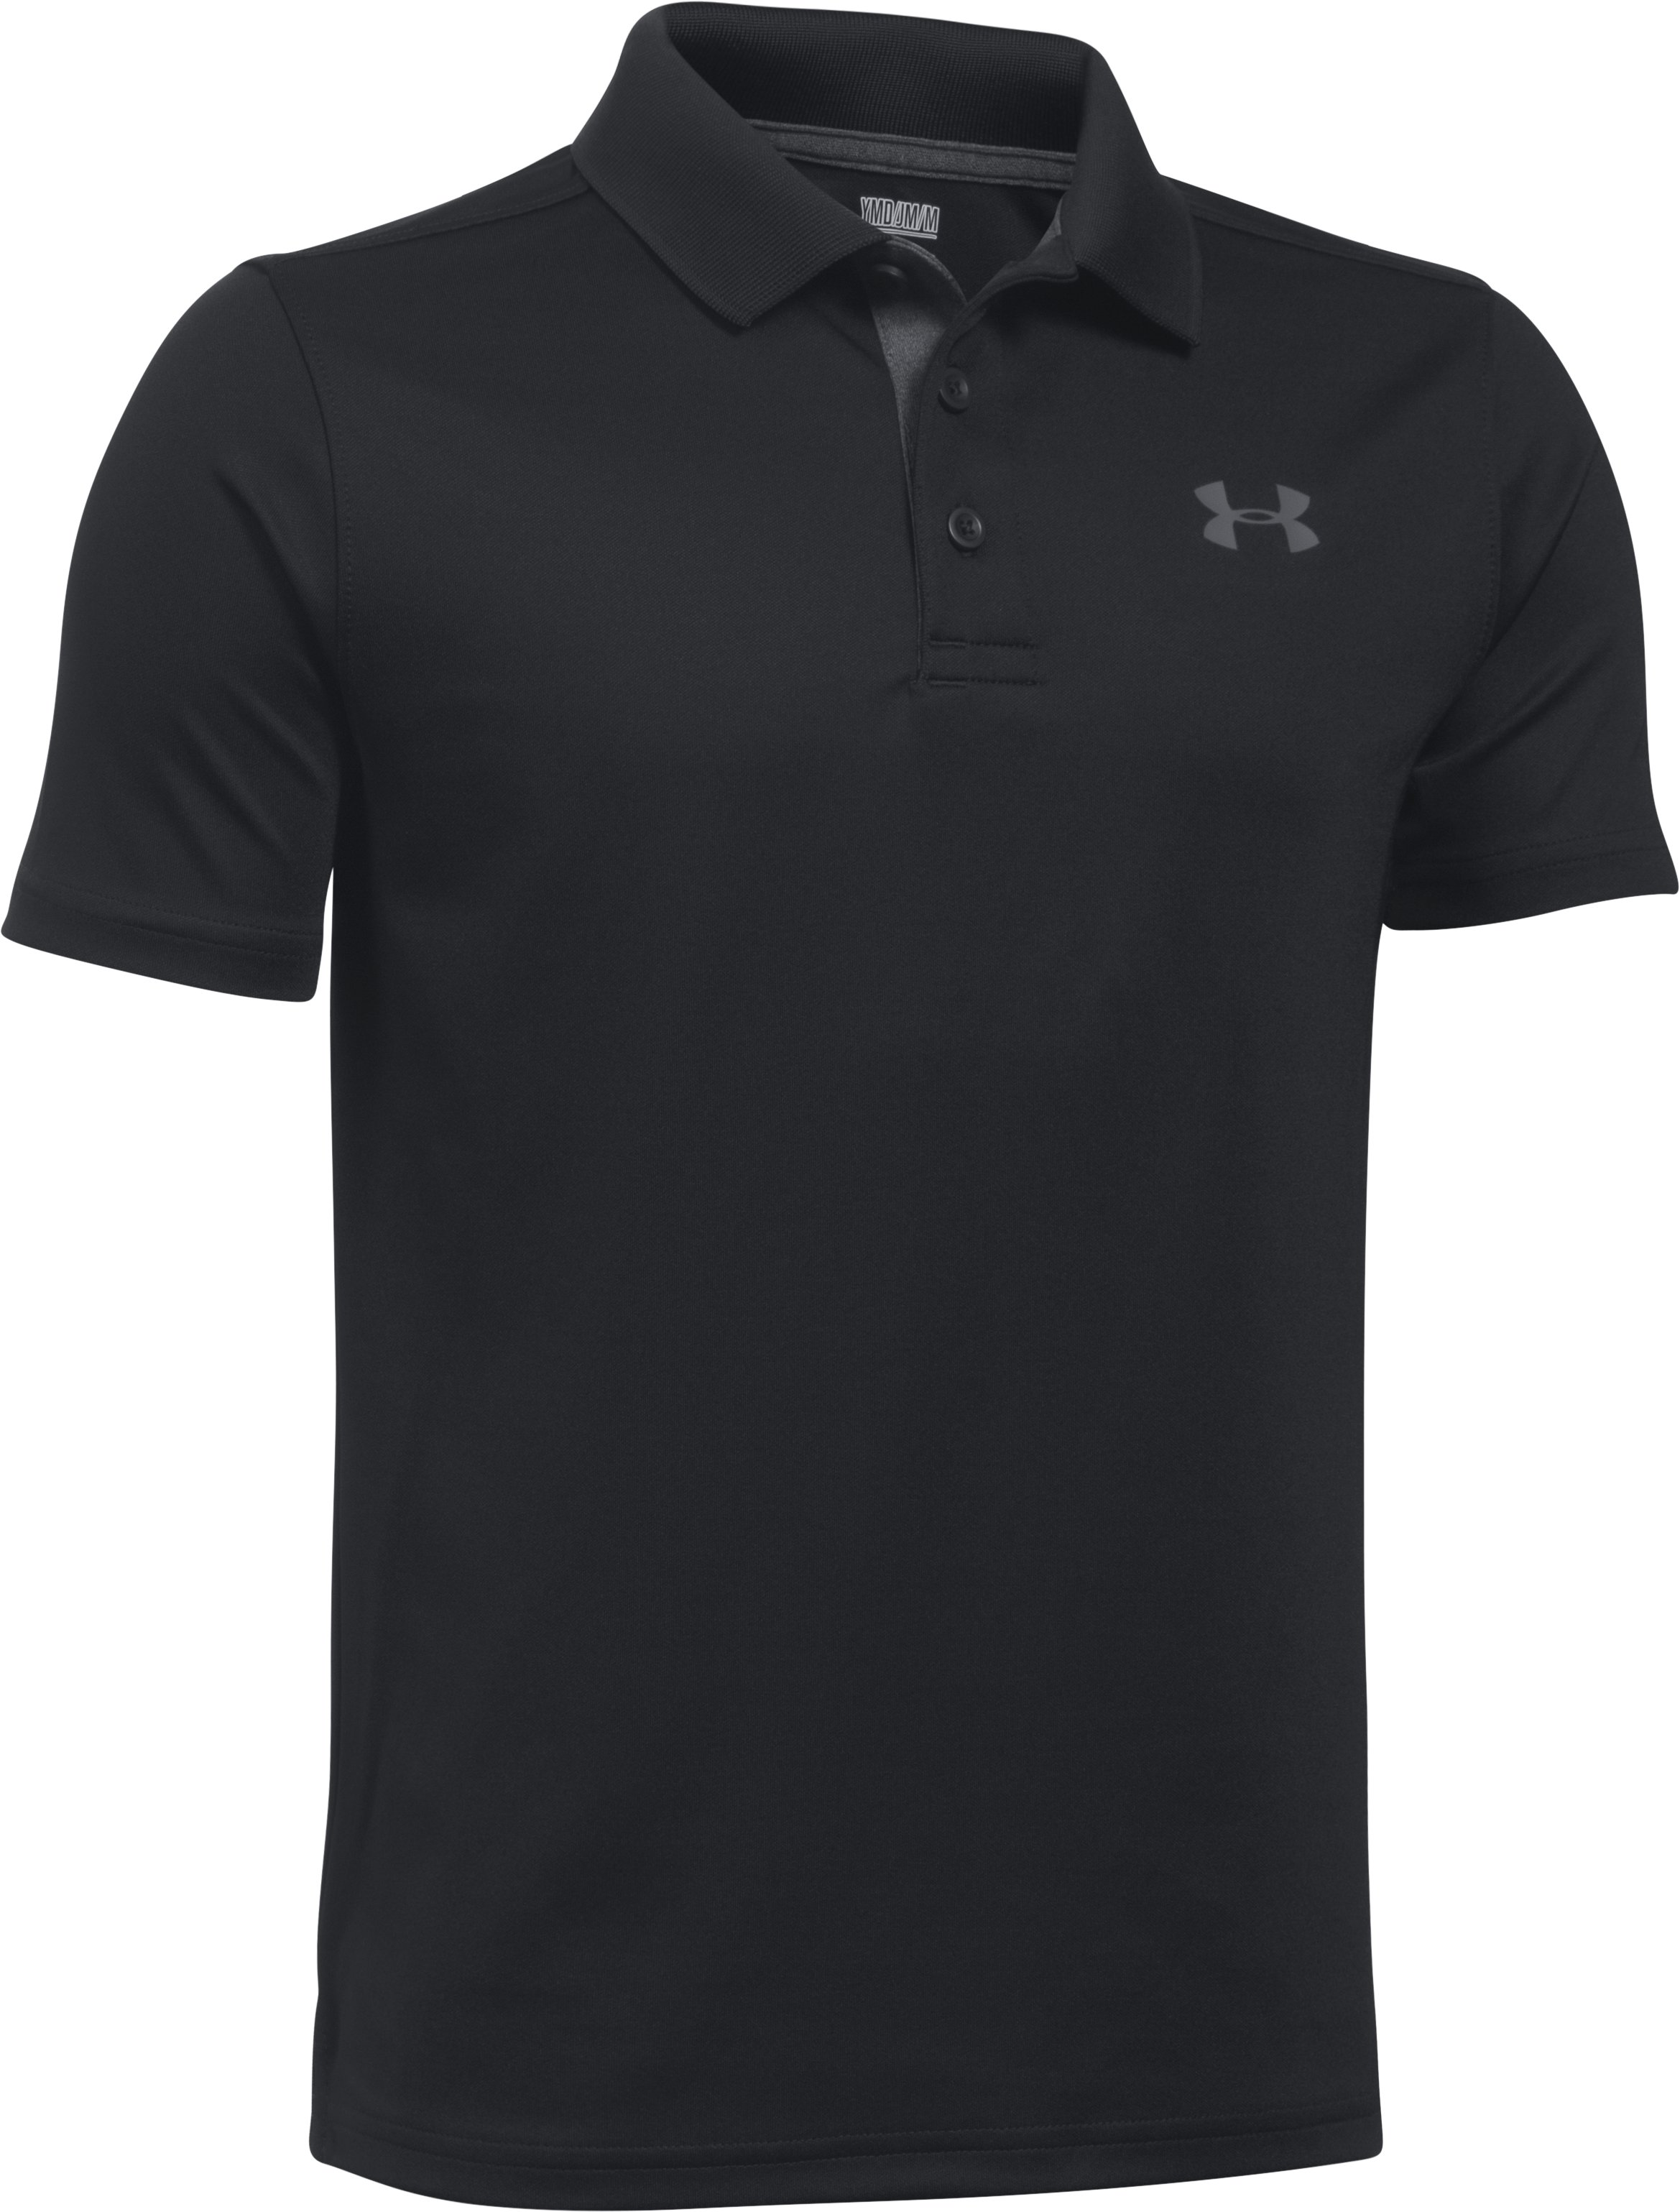 Boys' UA Performance Polo, Black